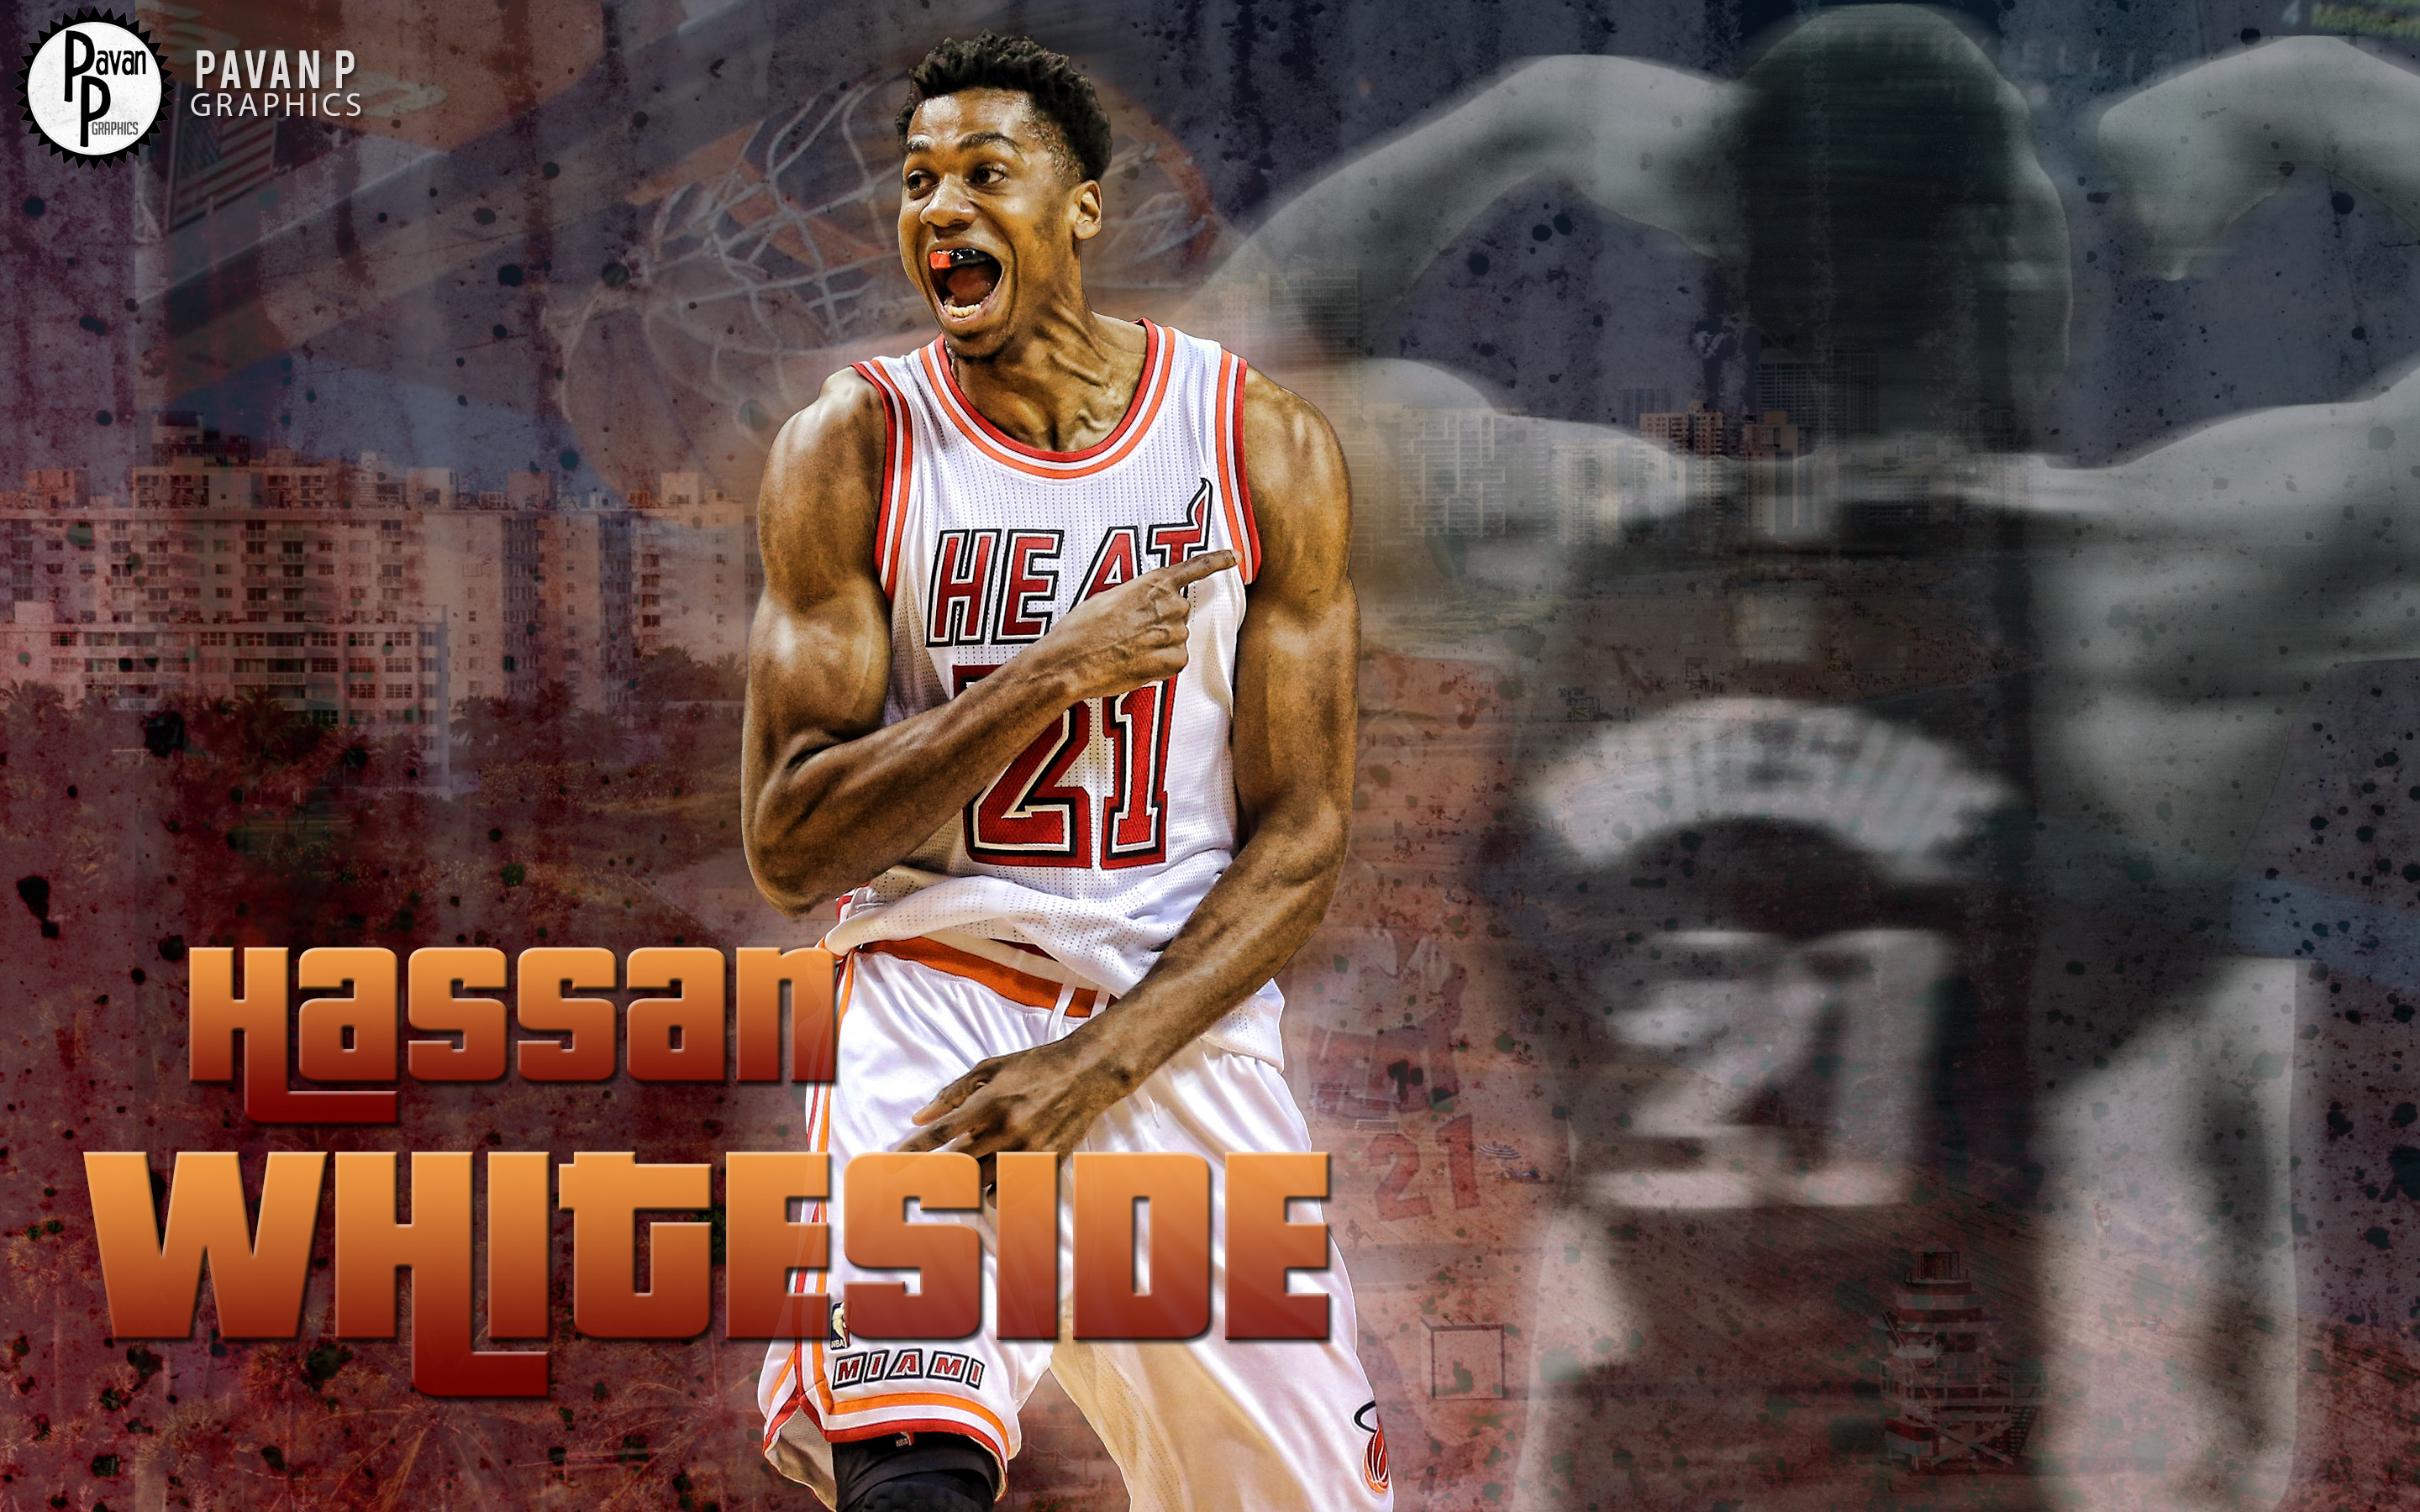 Miami Heat Wallpapers Basketball Wallpapers at BasketWallpaperscom 2880x1800